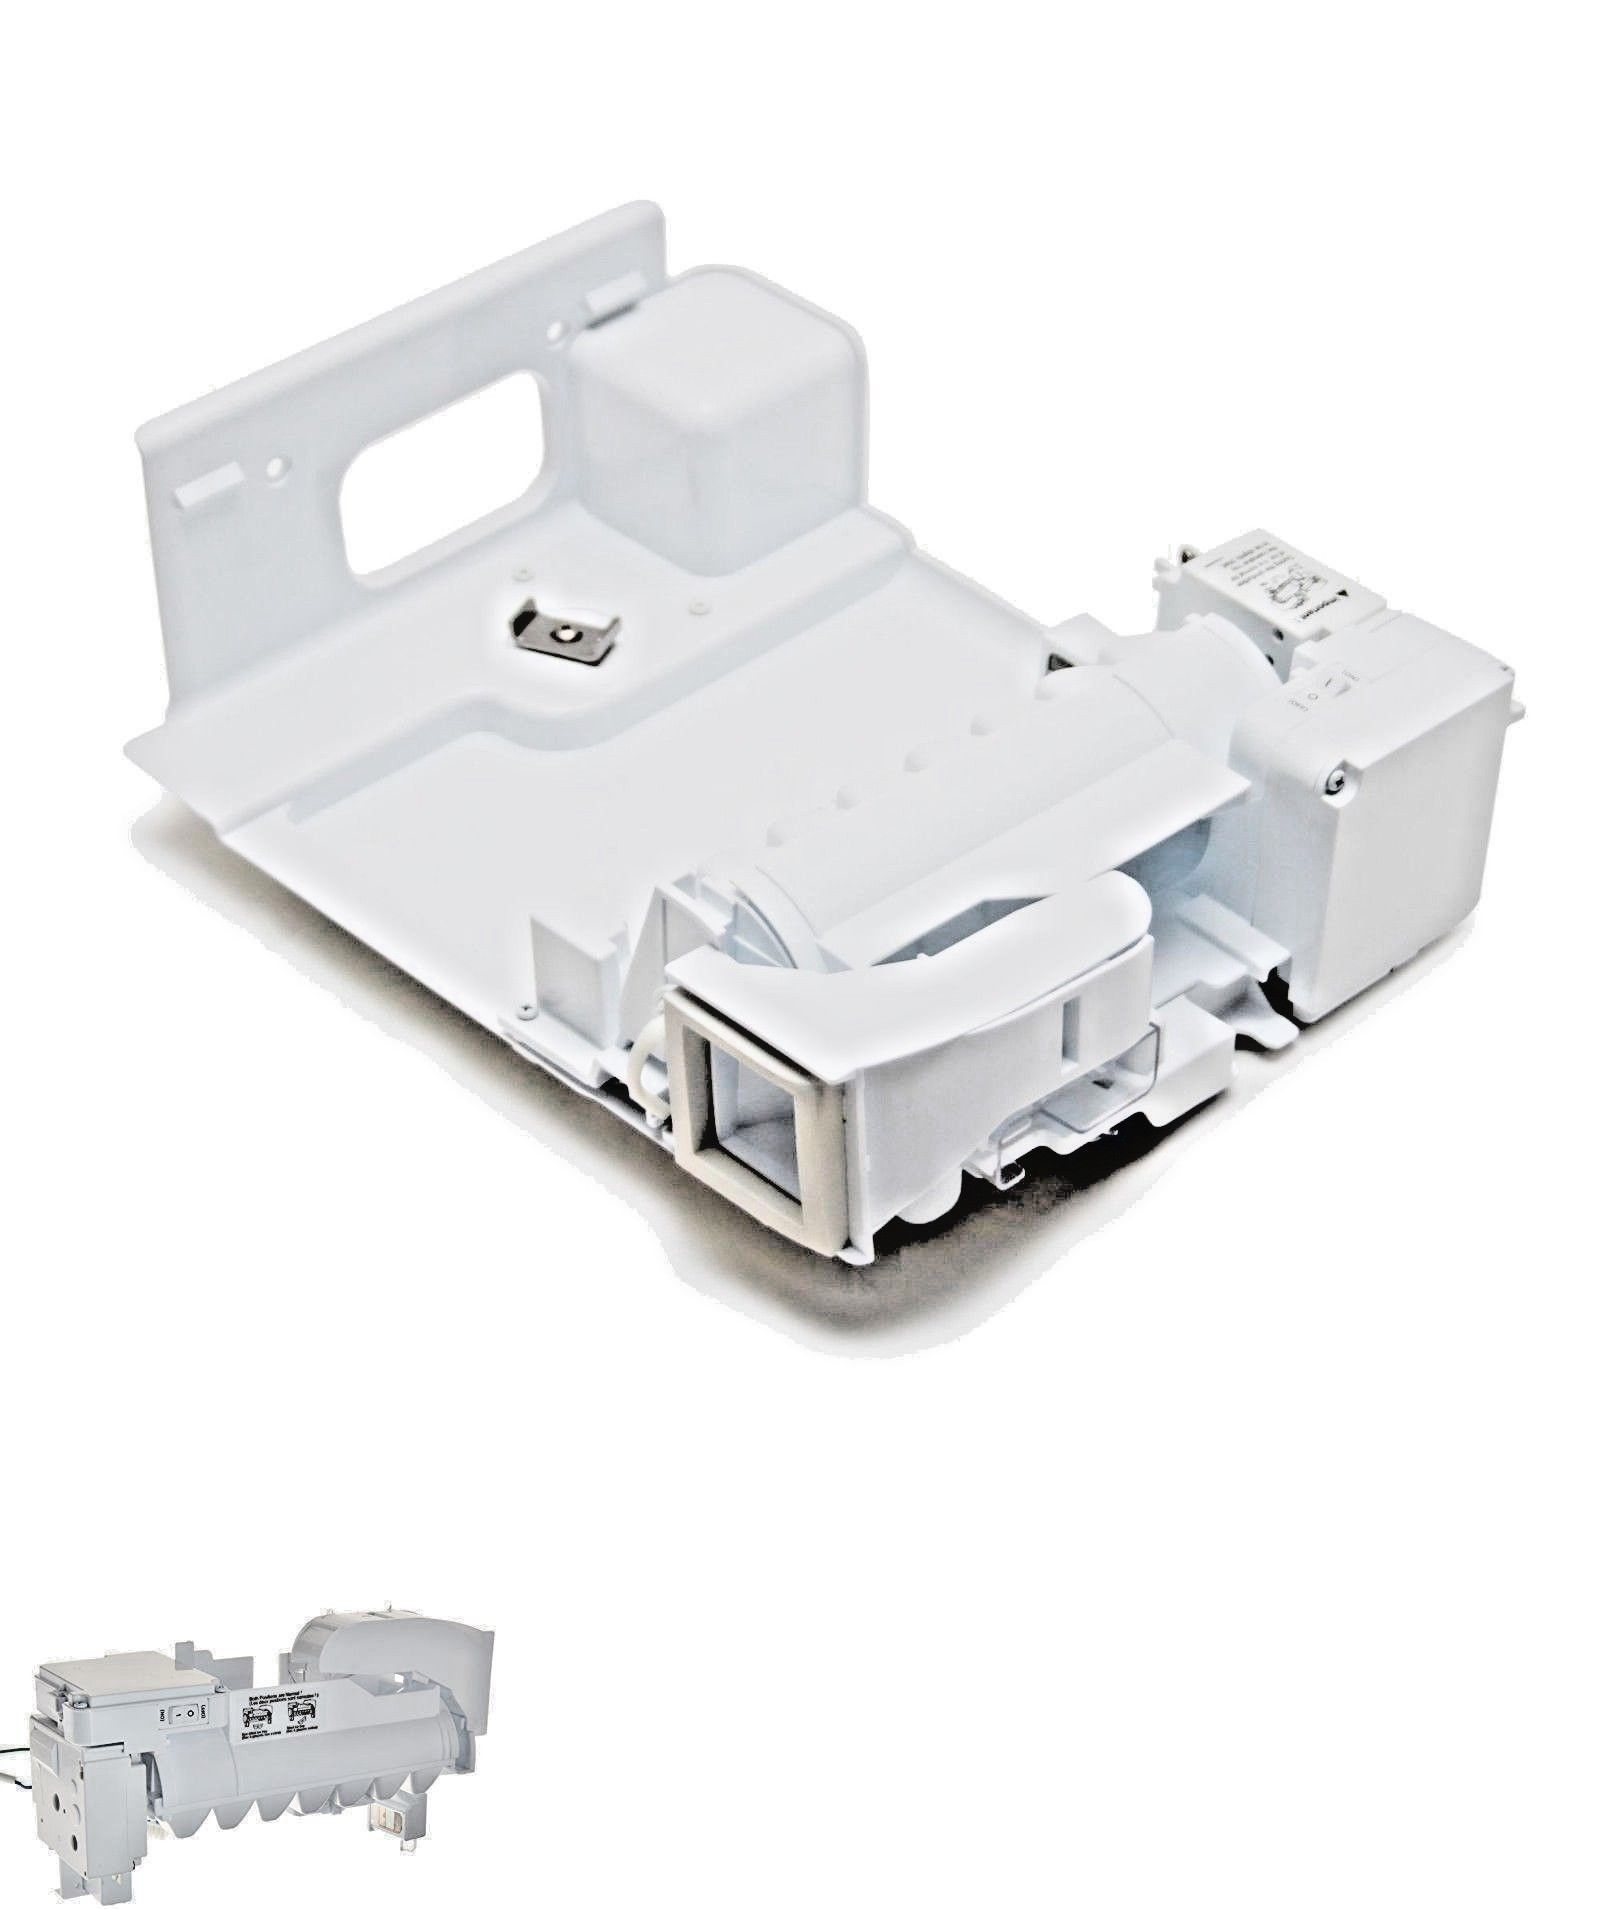 small resolution of parts and accessories 184666 lg aeq73110210 refrigerator ice maker assembly kit with free bonus buy it now only 129 29 on ebay parts accessories